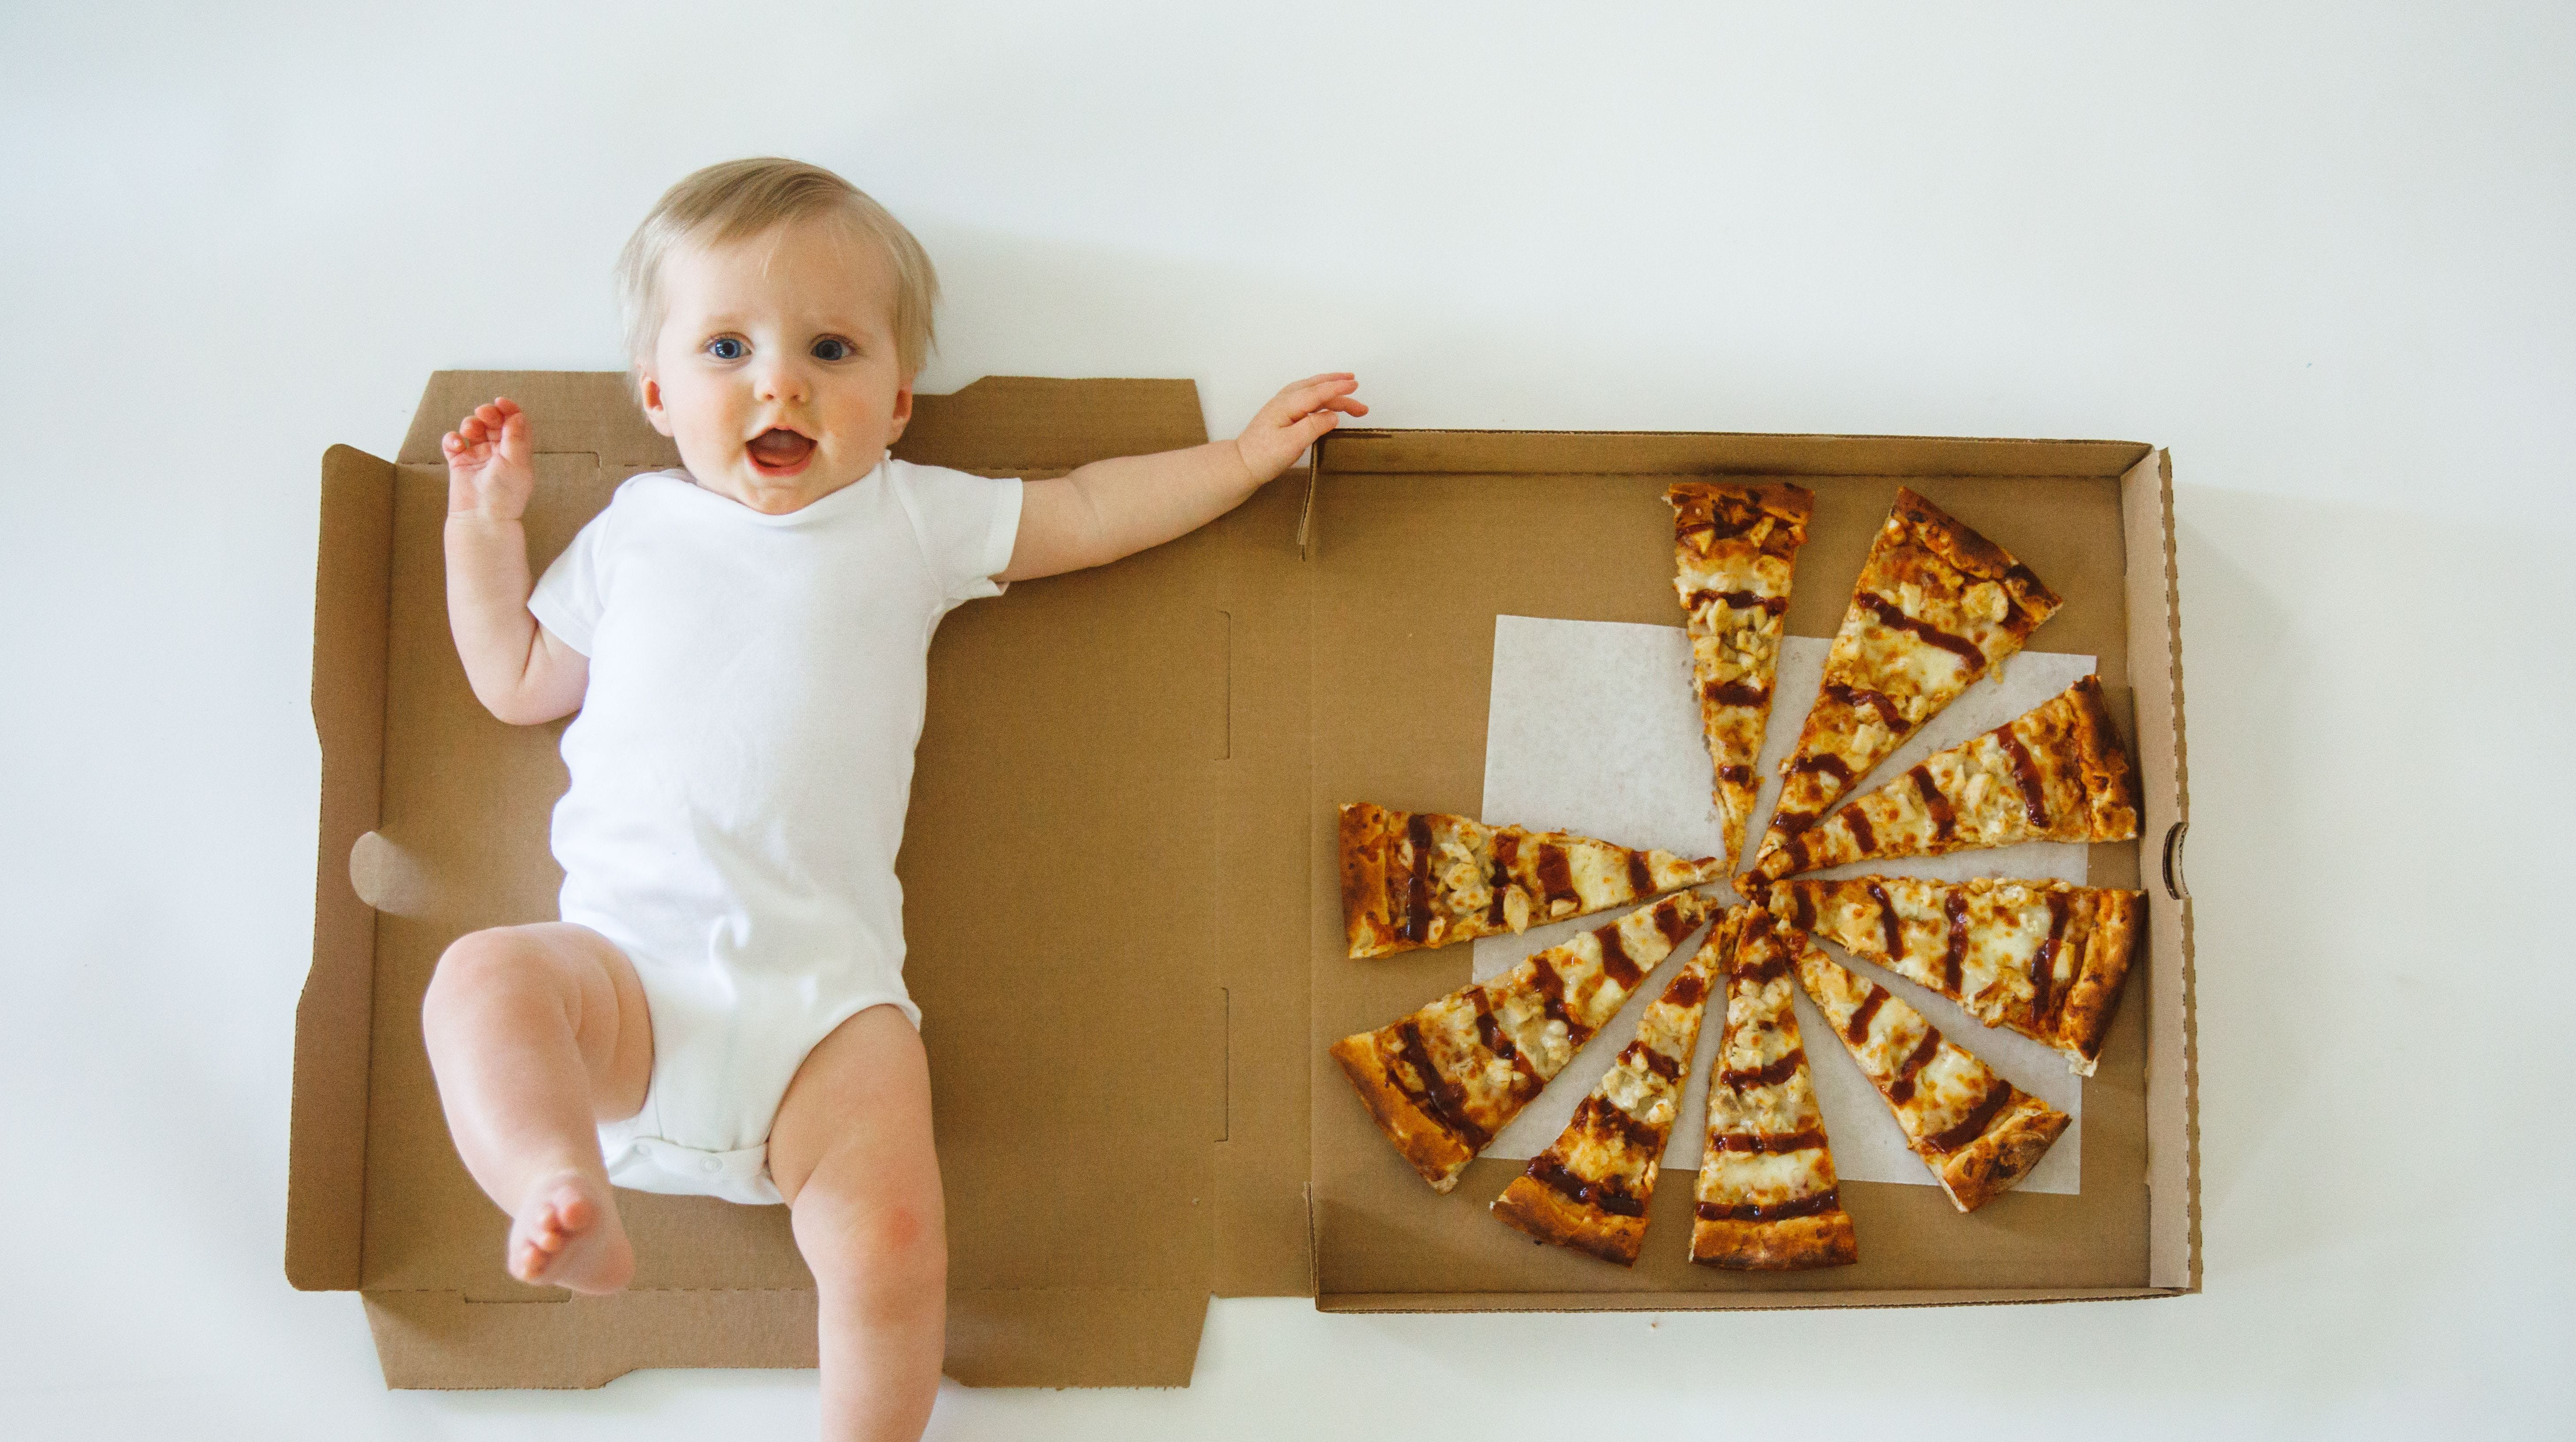 'Pizza baby' is melting hearts all over the internet with food-themed milestone photos